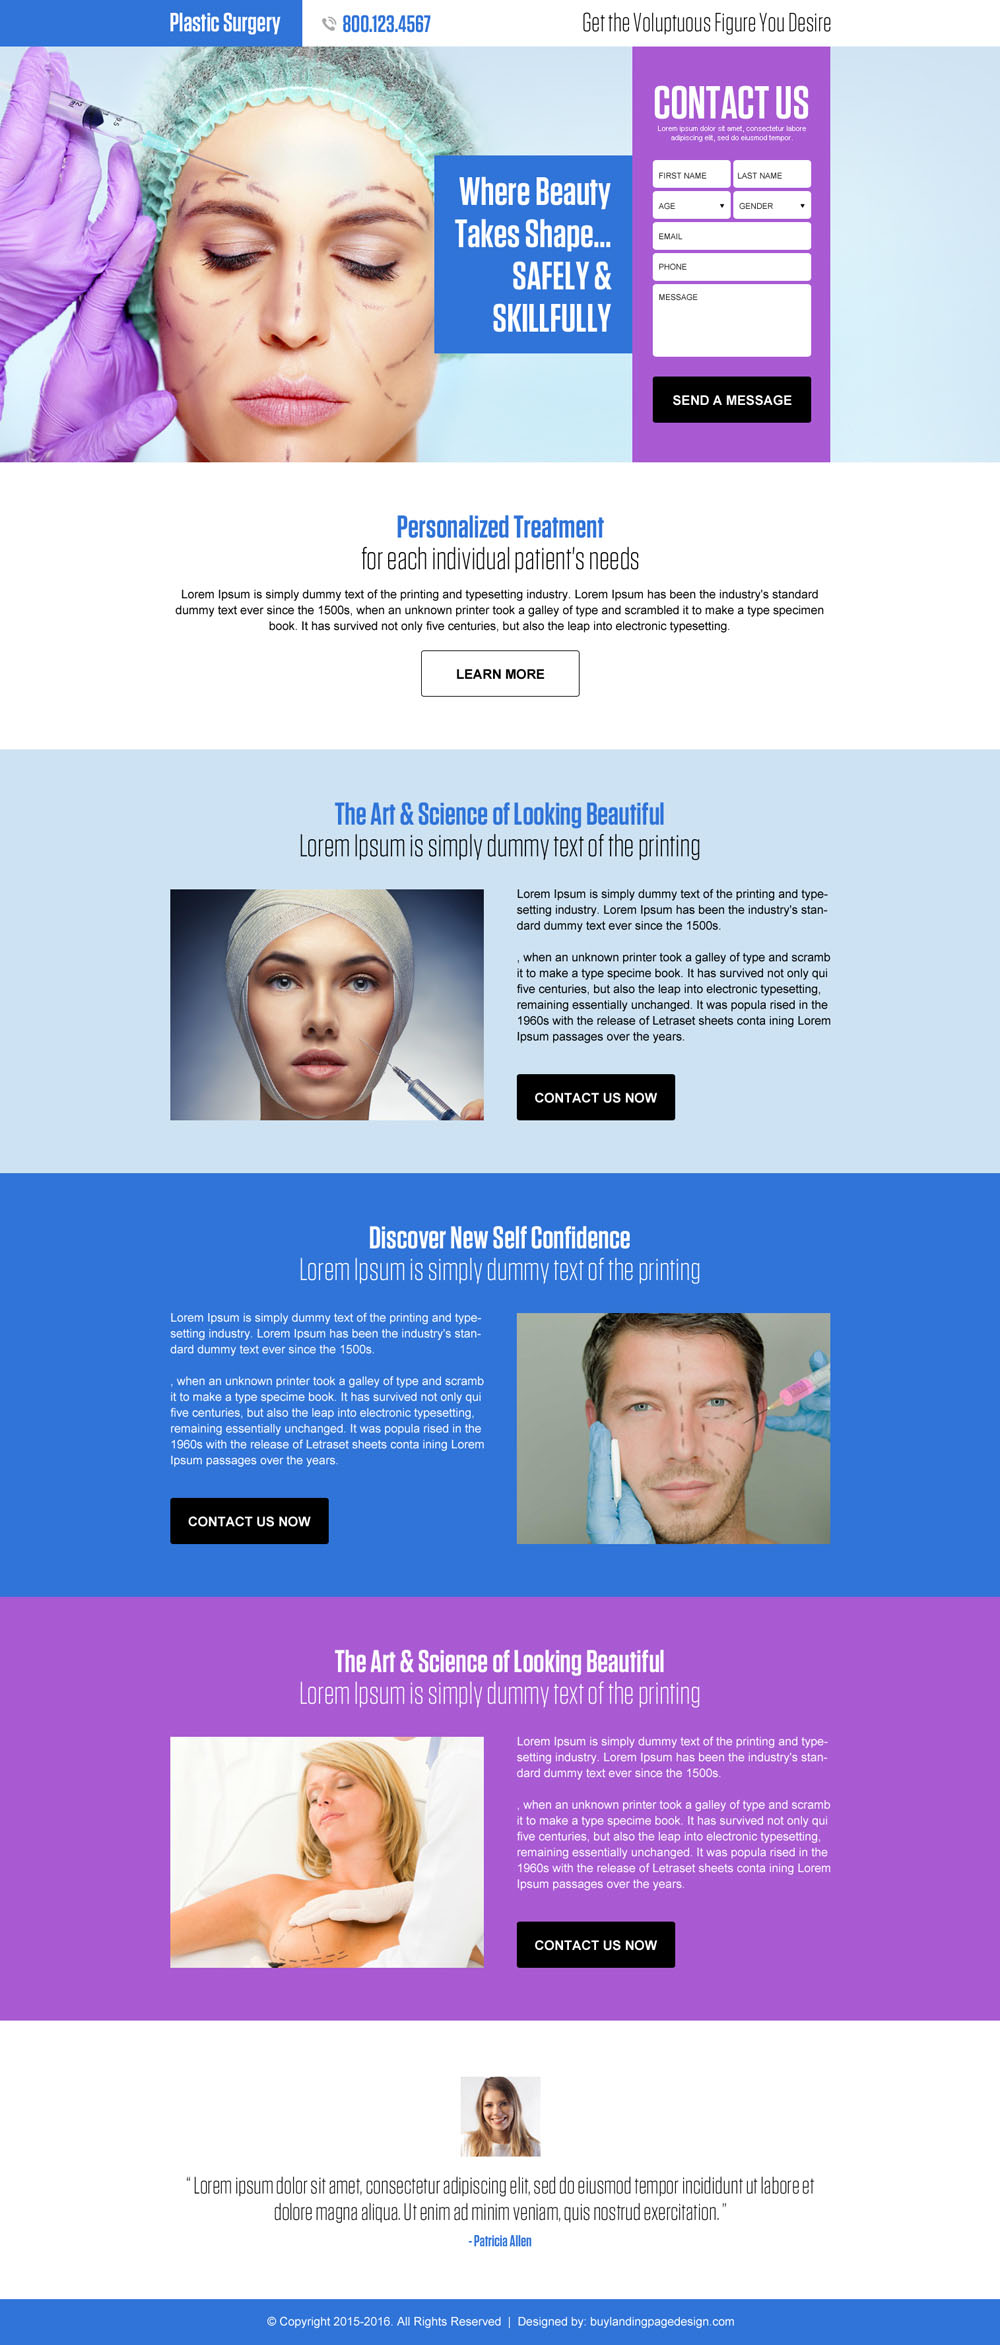 plastic-surgery-business-service-lead-generation-landing-page-design-001